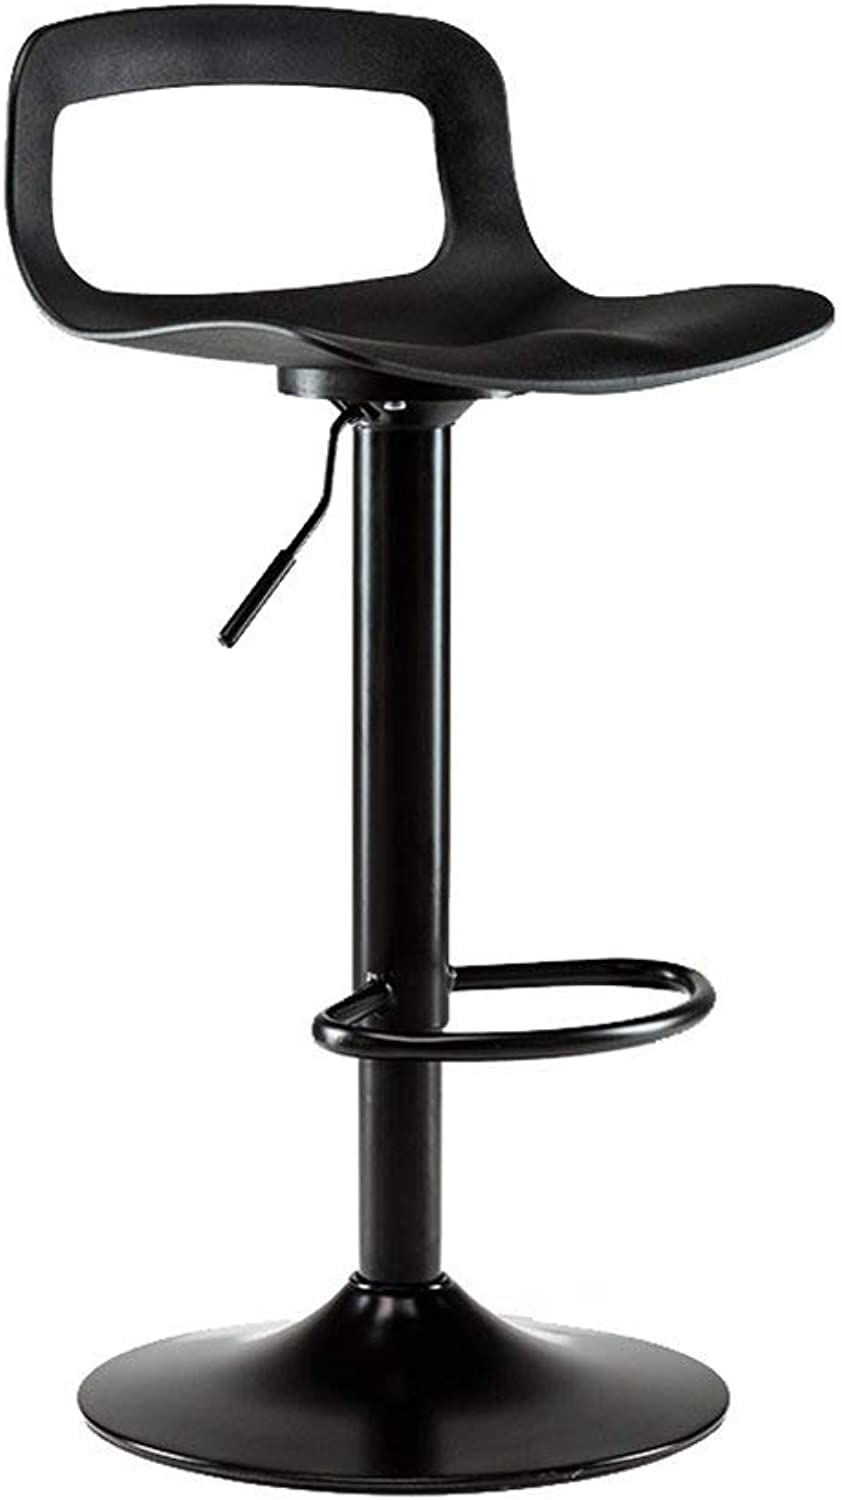 Bar Stool Chair 360 Degree Adjustable redating Plated Backrest Office Bar Stool Bar Chair Height FENPING (color   A)